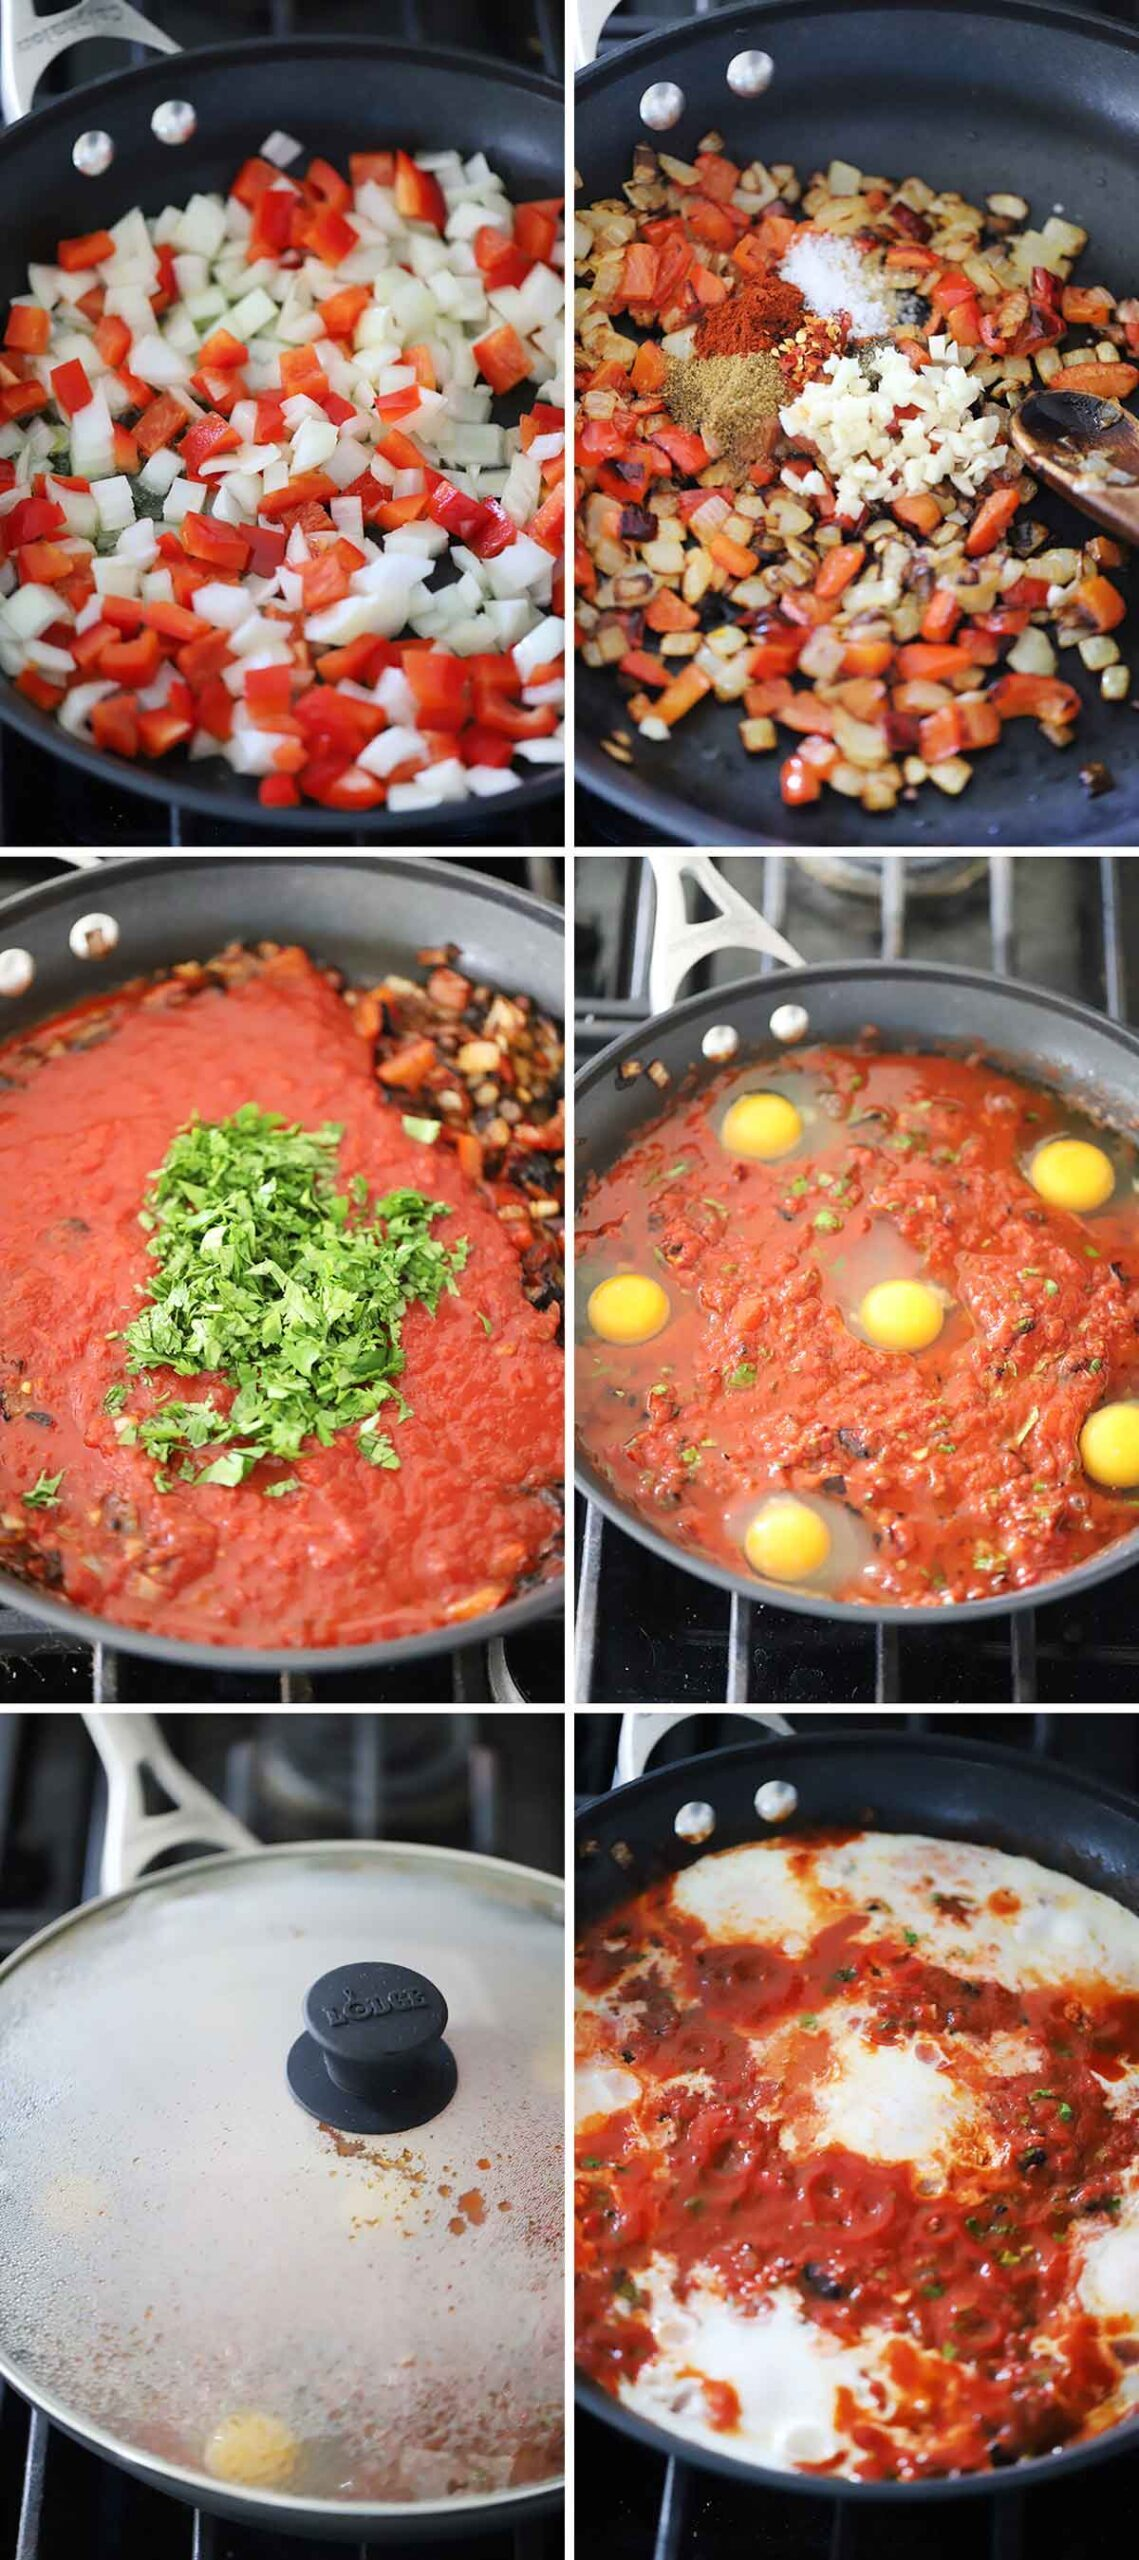 A process collage showing how to make Shakshuka in a skillet.